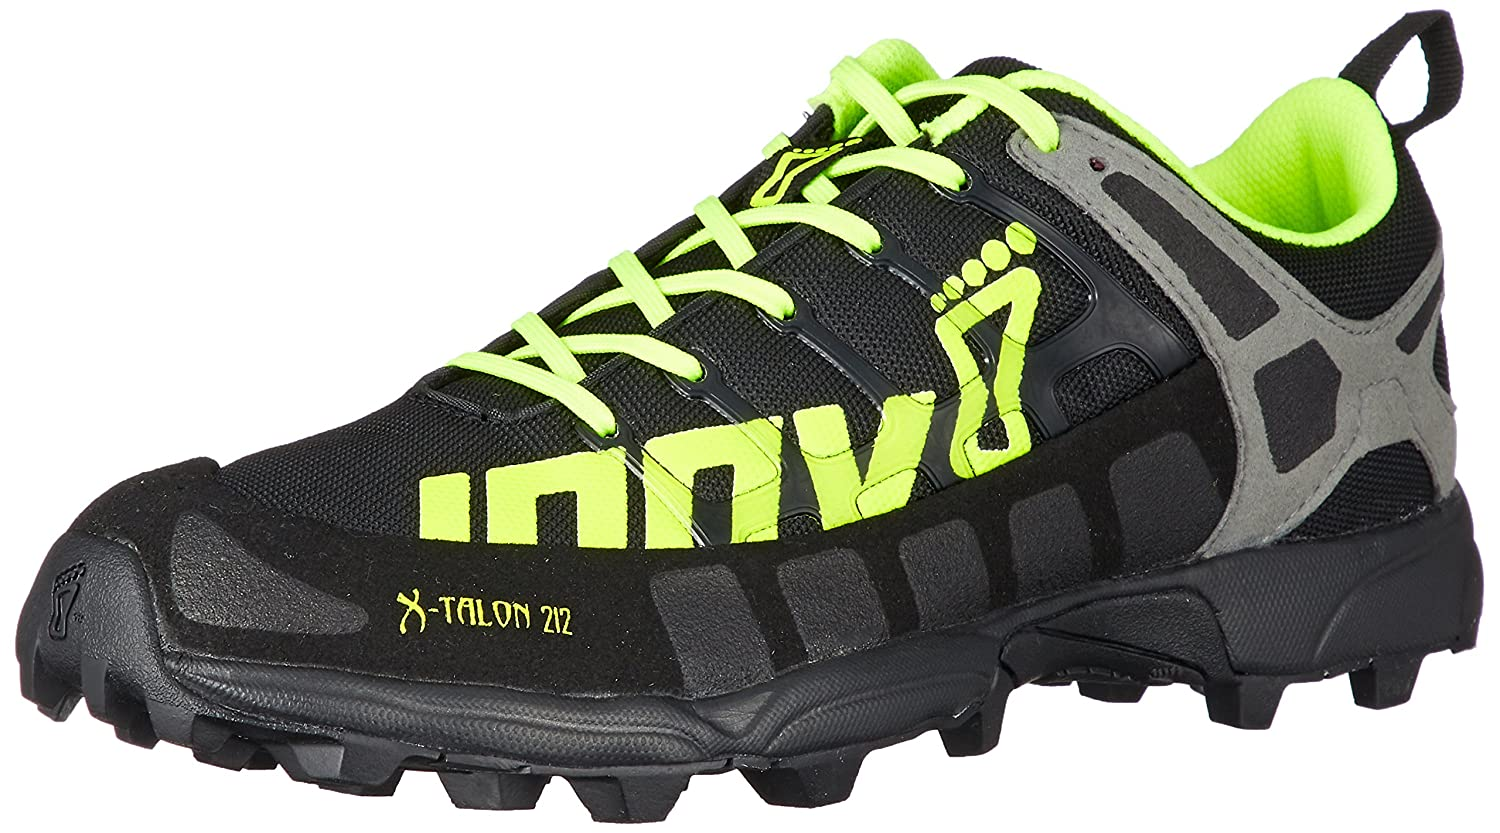 Inov-8 Men's X-Talon 212 (S) Trail-Running Shoe B01G7ZOKNE 6 C US|Black/Neon Yellow/Grey